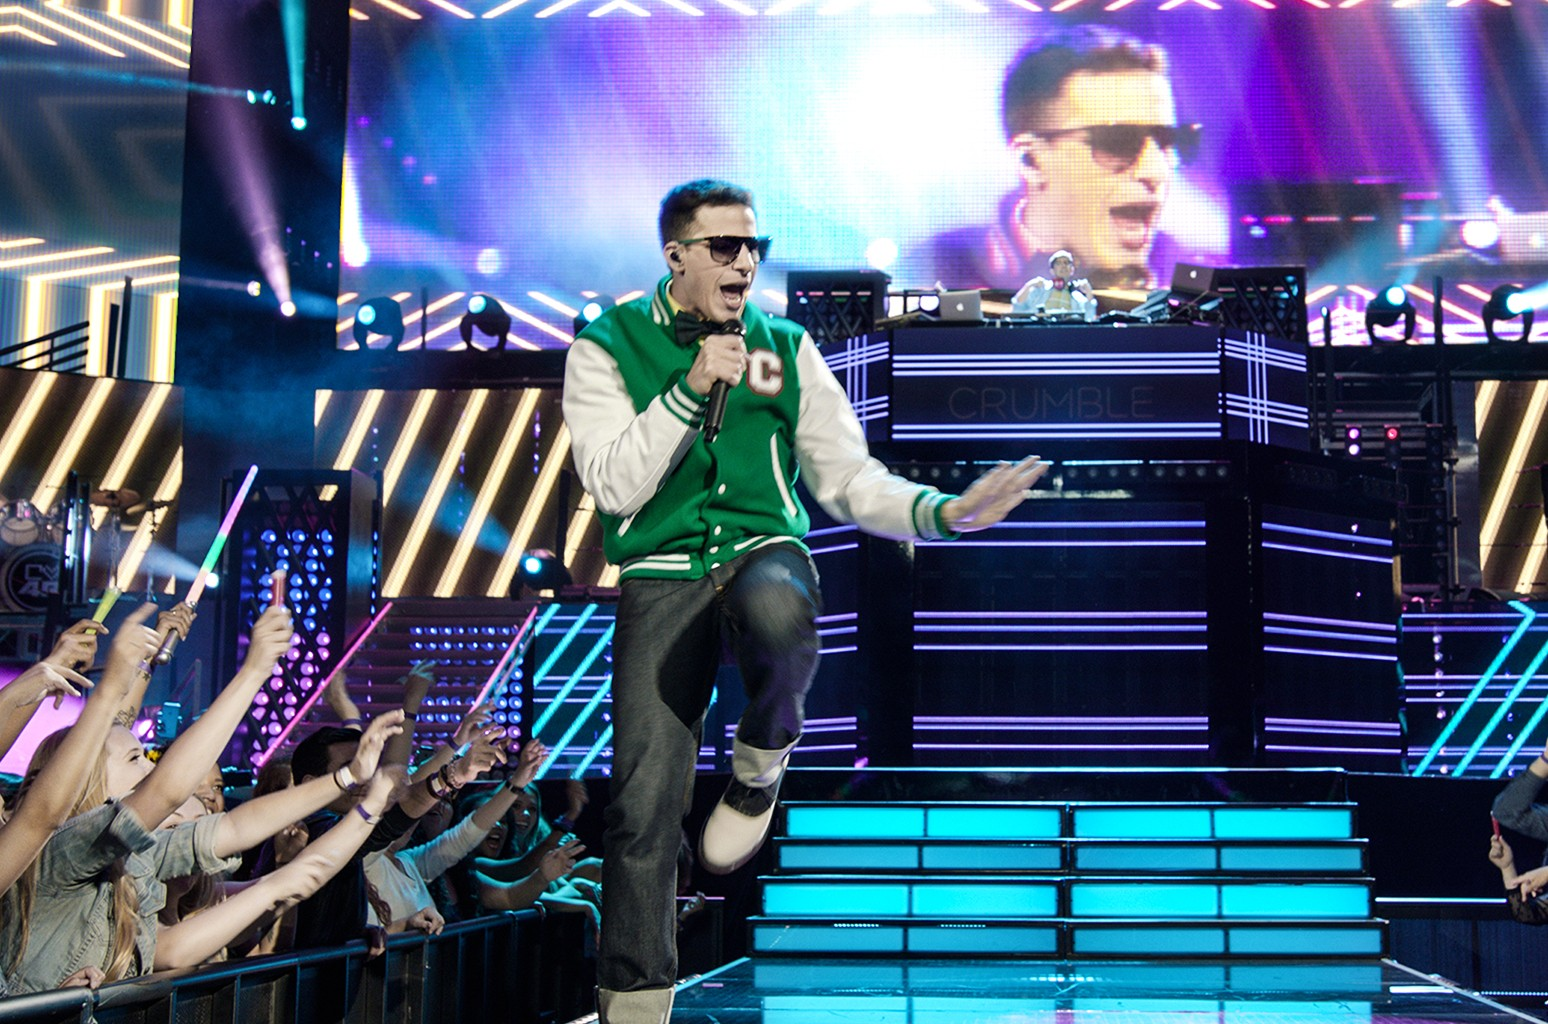 The Lonely Island in Popstar: Never Stop Never Stopping